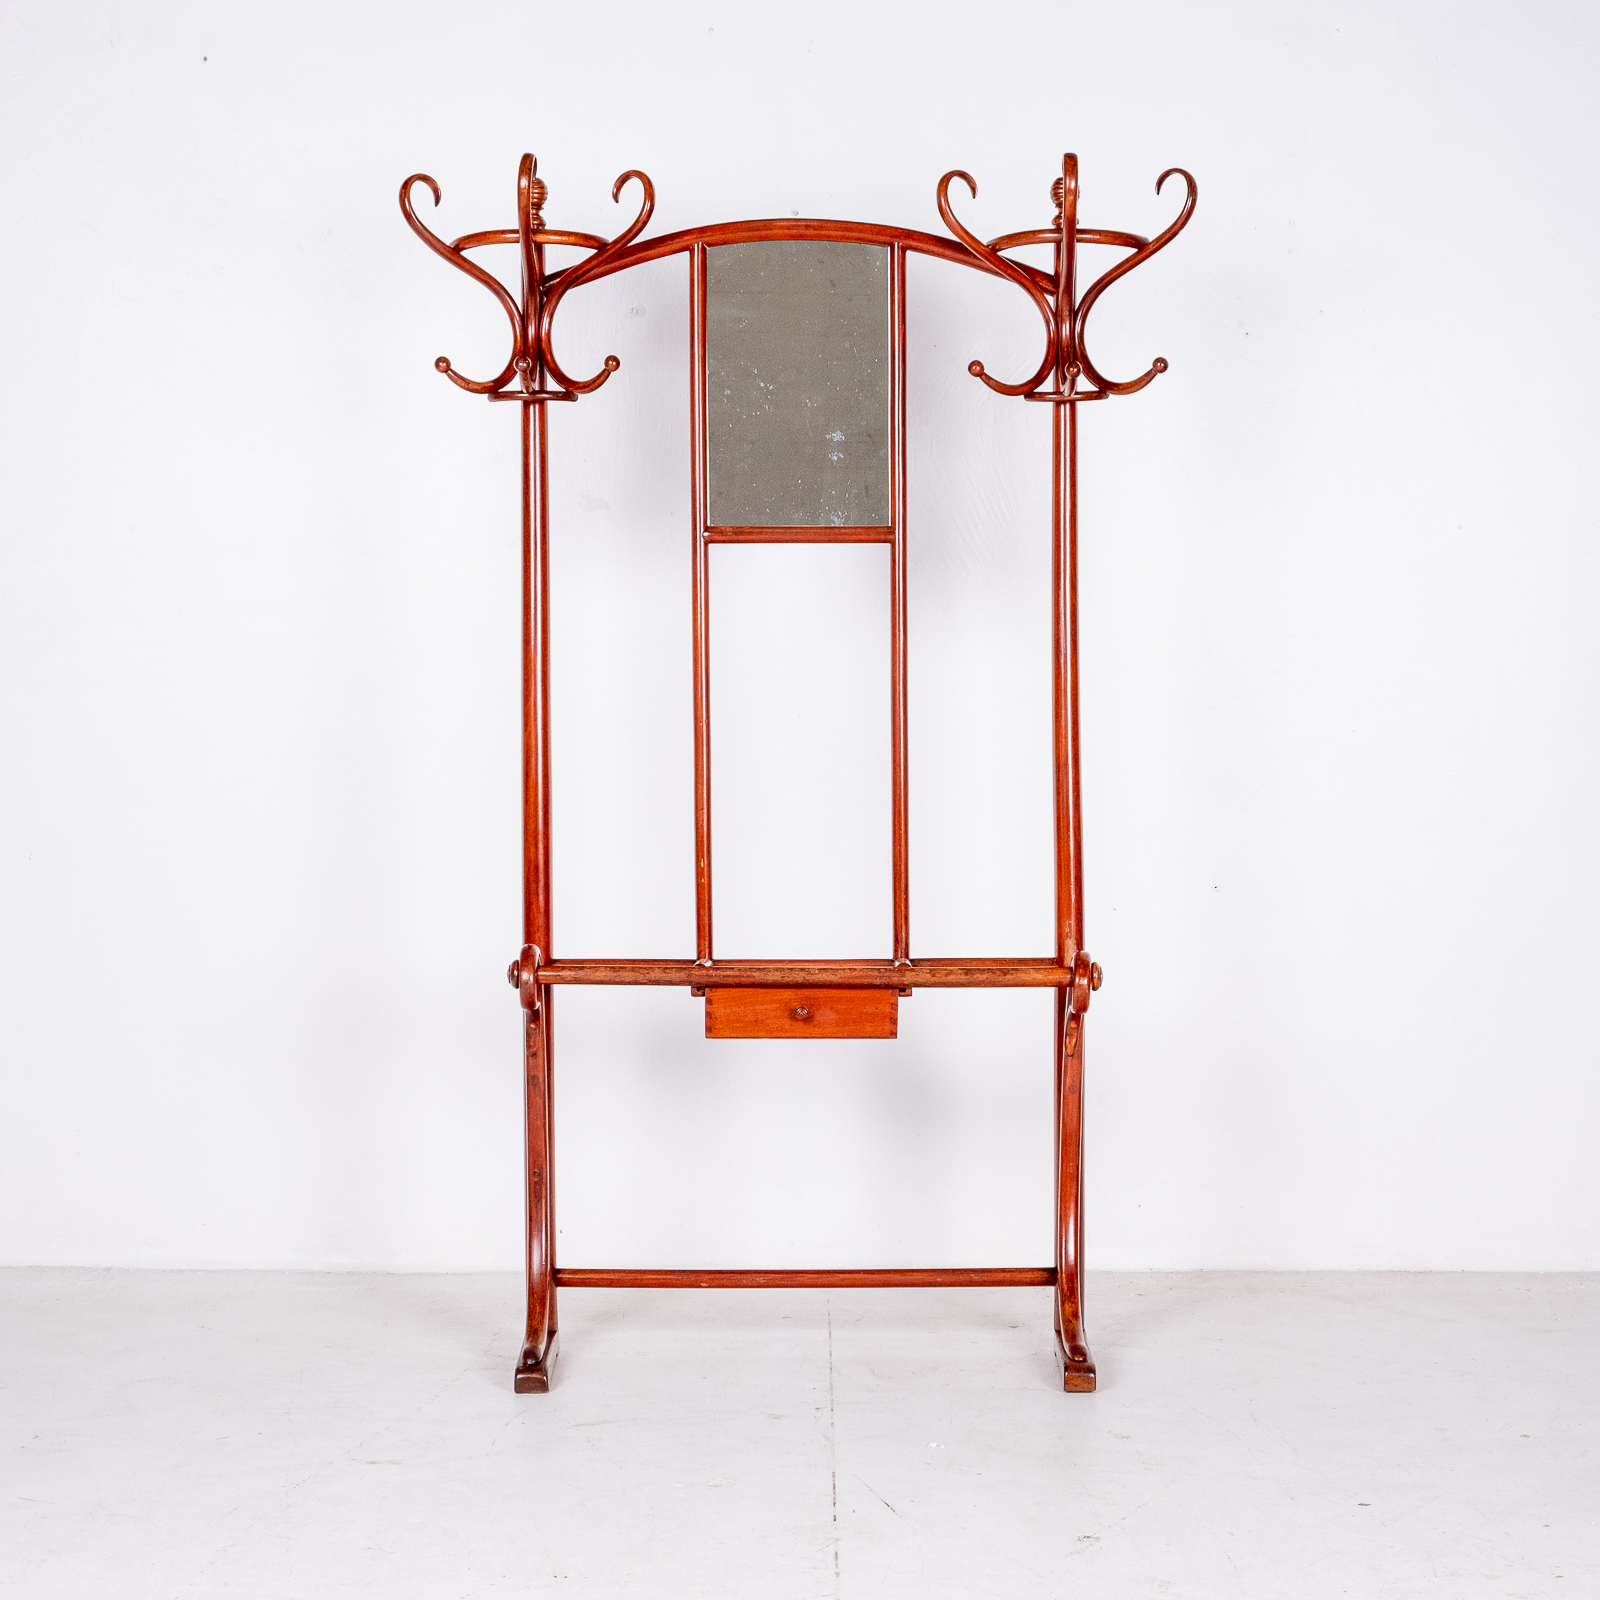 Model No. 4 Coat Stand By Michael Thonet For Thonet, Vienna, 1910001